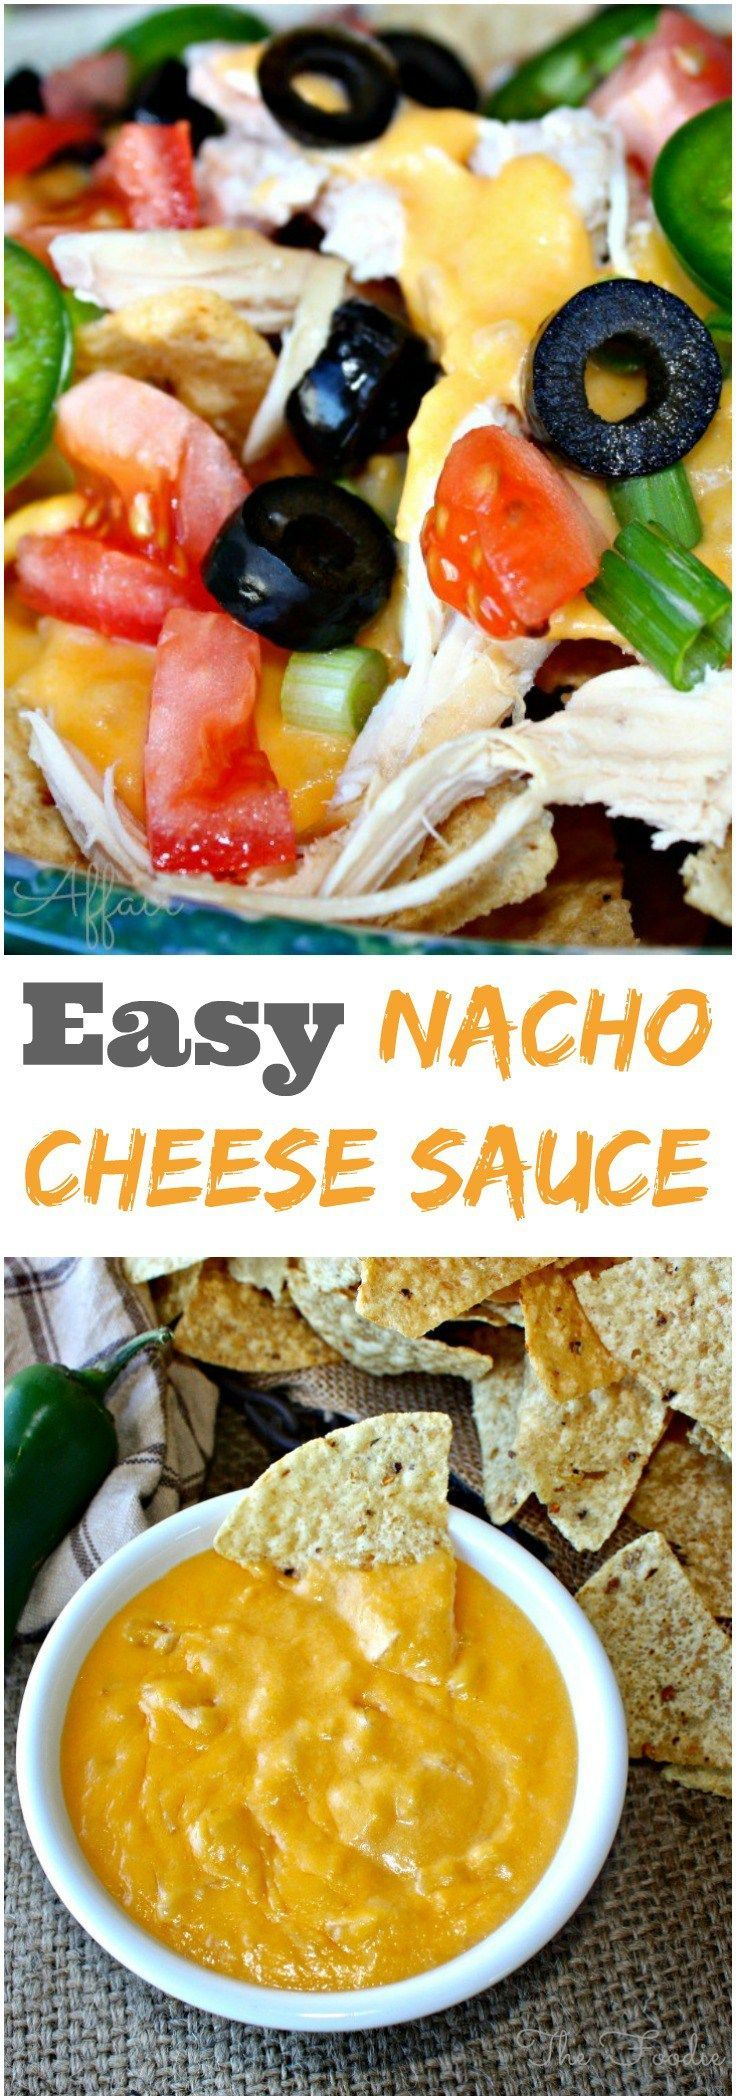 Homemade Nacho Cheese Sauce for an easy dip or or create a loaded nacho platter! The Foodie Affair